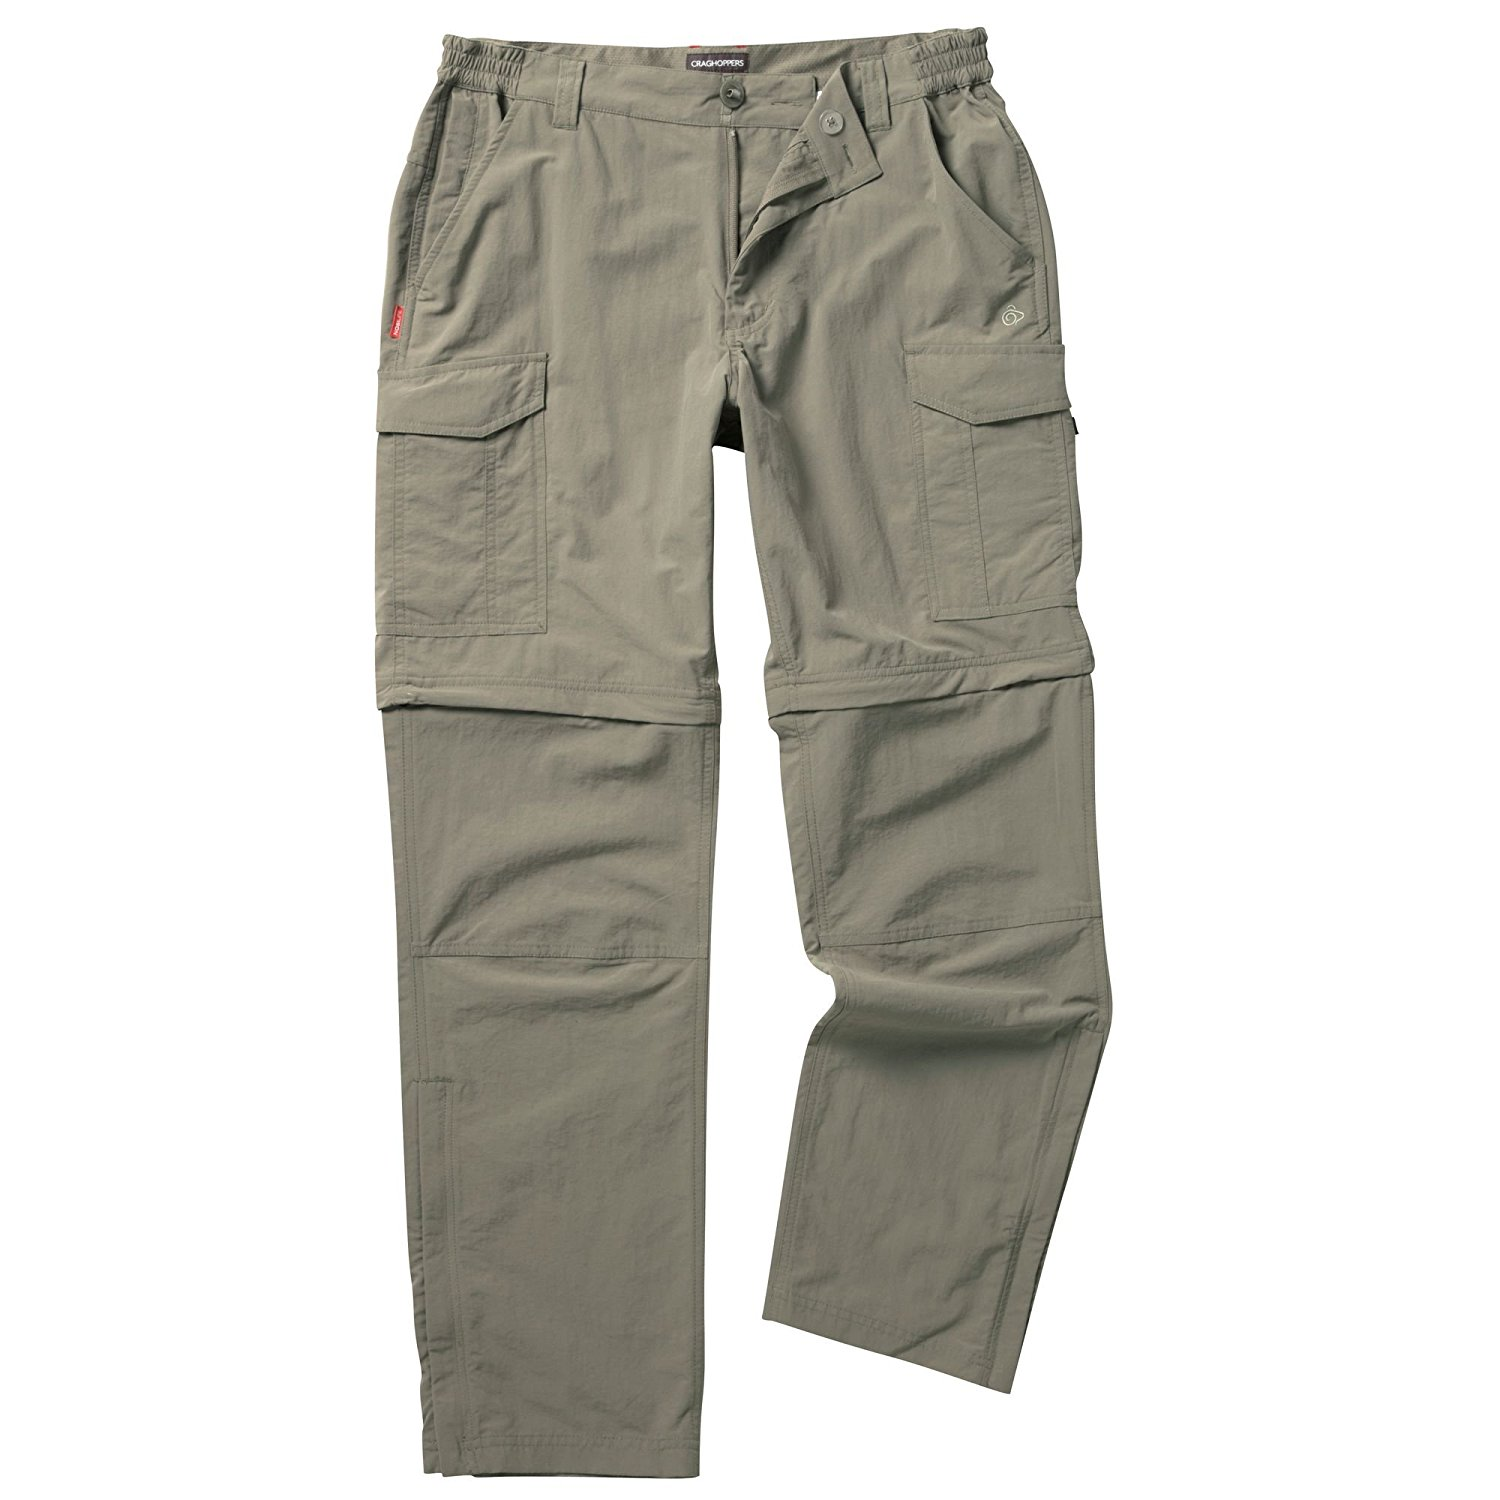 7e8895b4f76 Get Quotations · Craghoppers NosiLife Mens Convertible Insect Repellent  Trousers